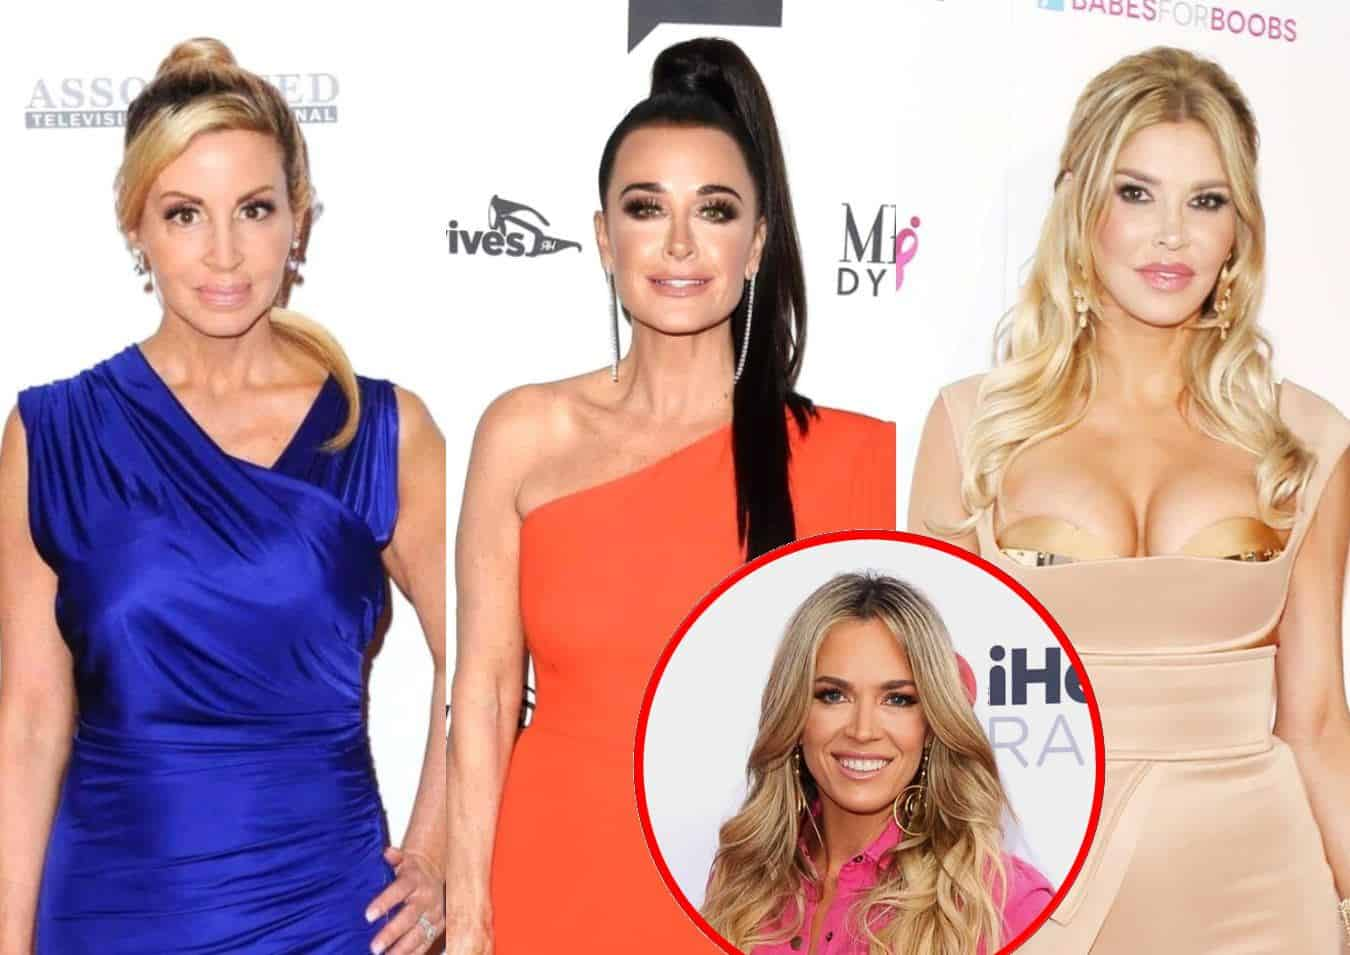 """Camille Grammer Implies Brandi Will Become """"Vile"""" Kyle's New Puppet Following Void Left by Teddi's RHOBH Exit as Brandi Fires Back in Twitter Feud"""